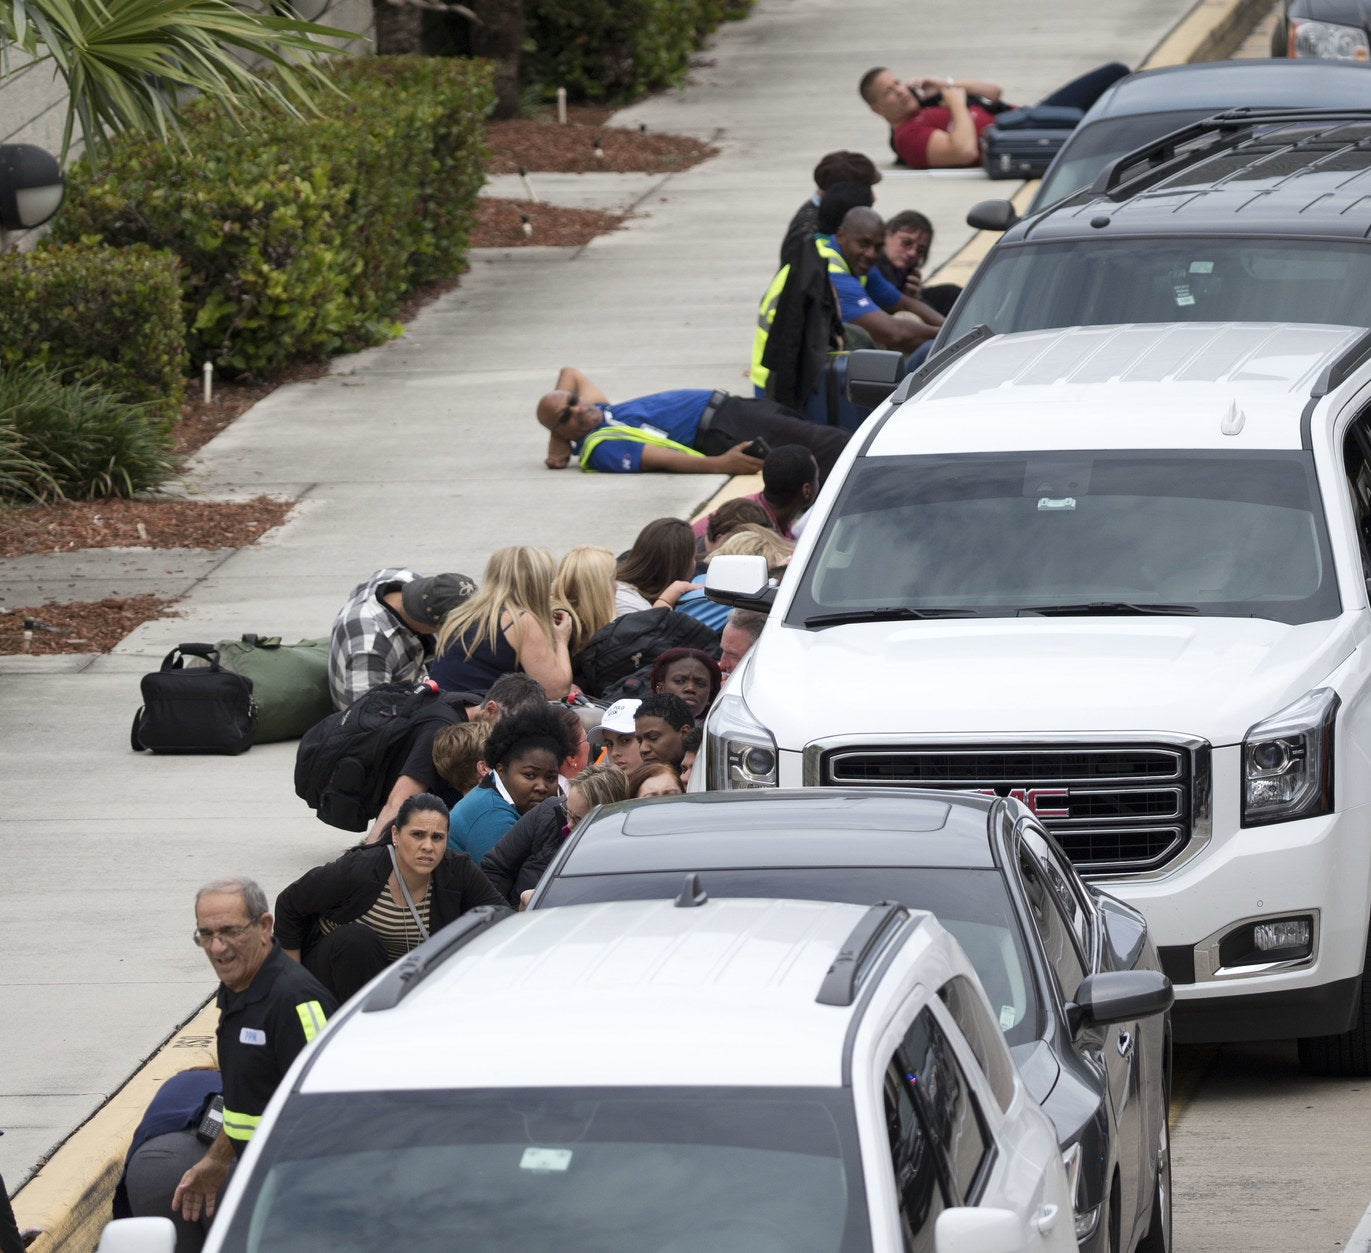 People also sought cover behind cars outside the airport.